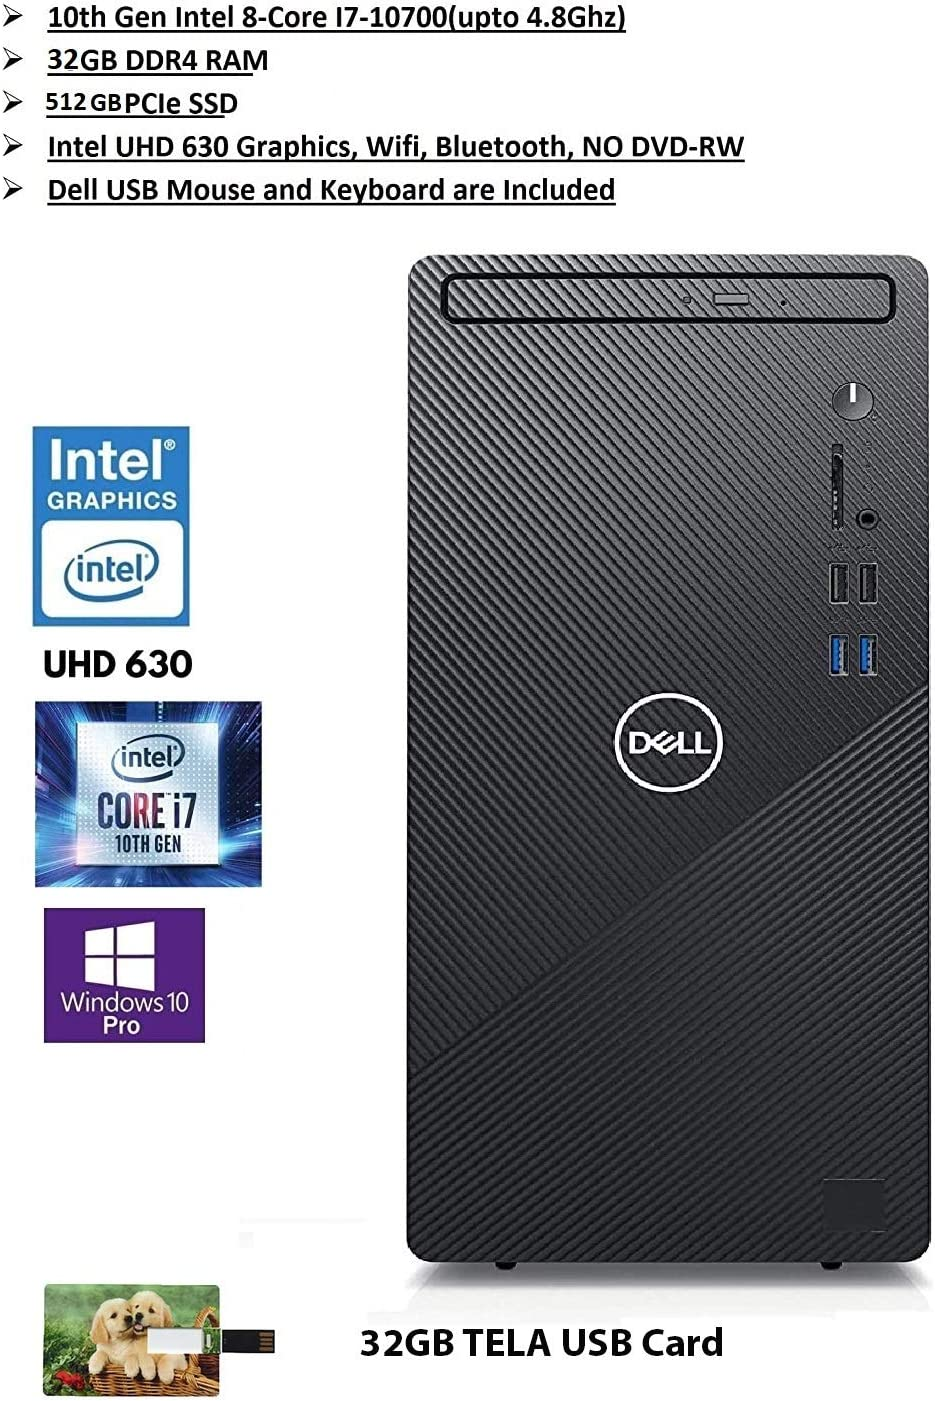 2020 Newest Dell Inspiron Biz Tower Desktop: 10th Gen Intel 8-Core i7 Processor(Upto 4.8Ghz), 32GB RAM, 512GB PCIe SSD, Intel UHD, WiFi, Bluetooth, VGA, HDMI, USB3.0, Win 10 Pro | 32GB Tela USB Card